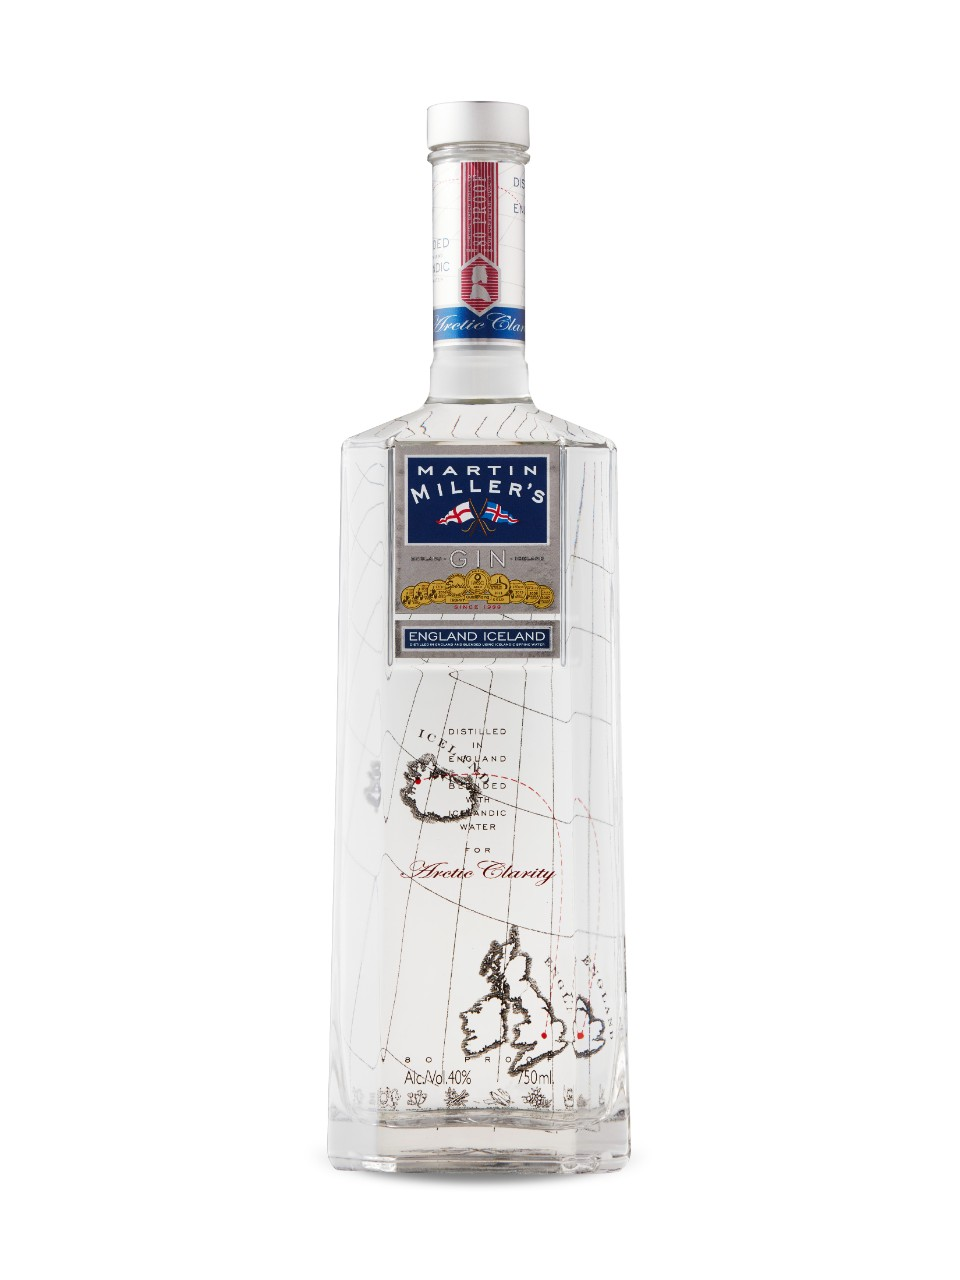 Martin Millers Gin